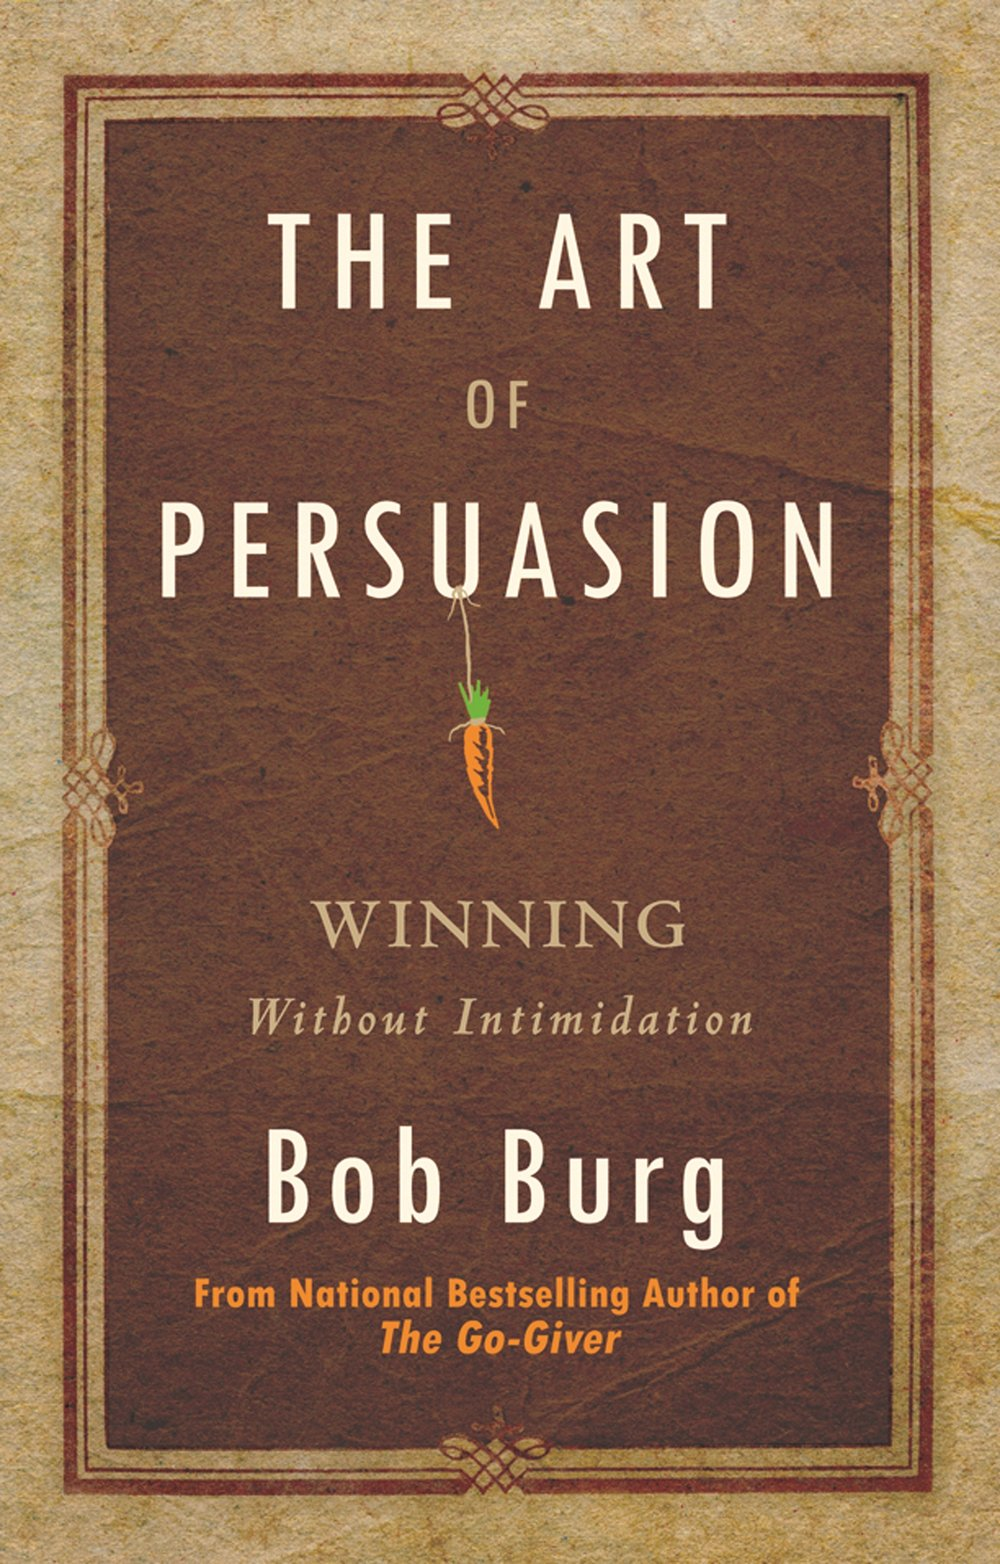 The Art of Persuasion - Bob Burg